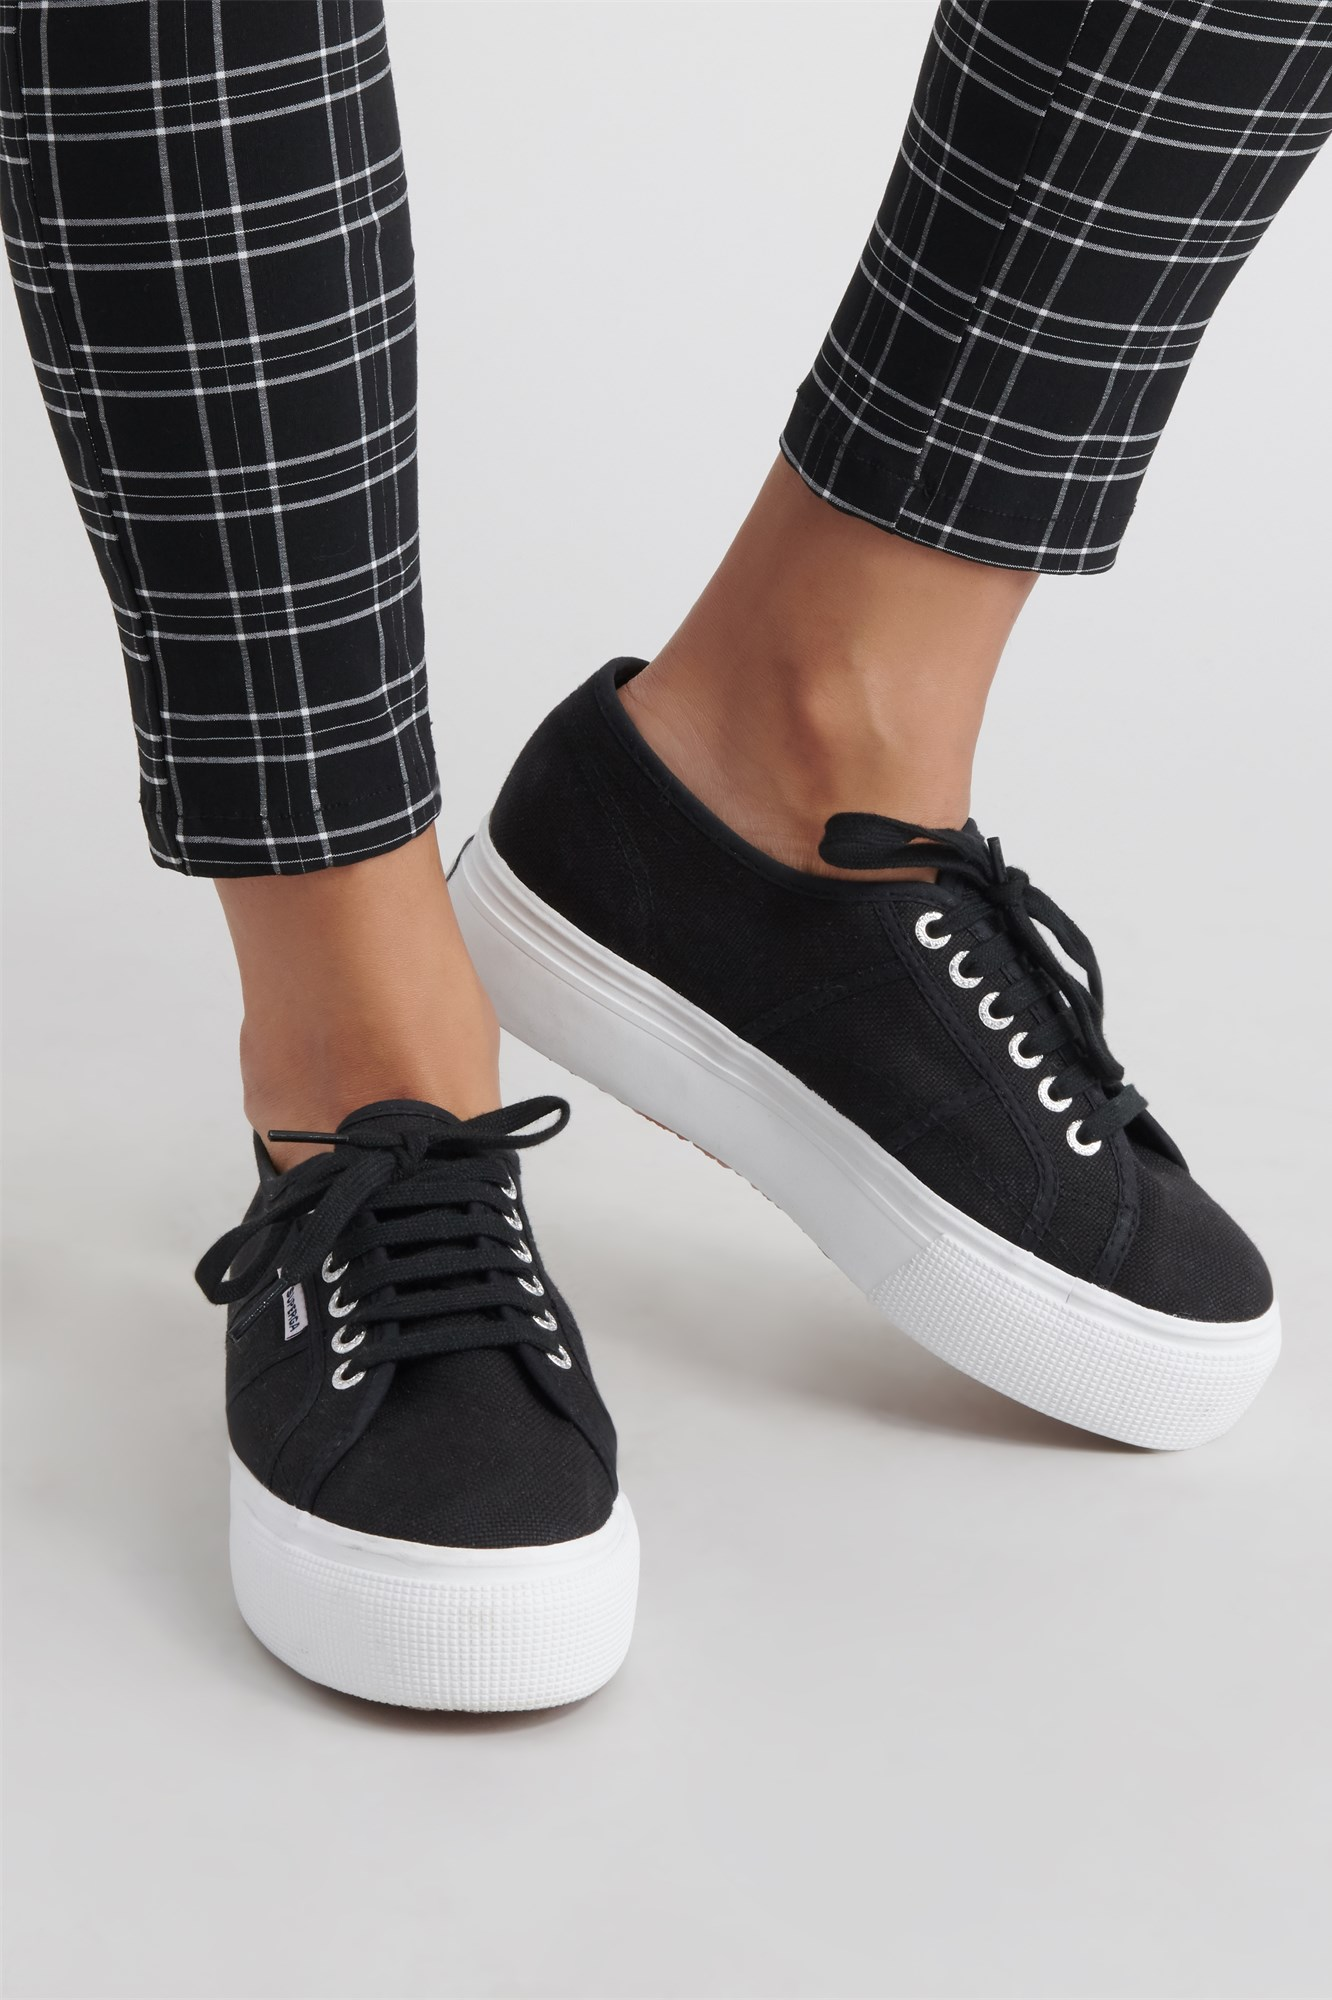 first rate new arrivals low price sale Superga Flatform Shoe